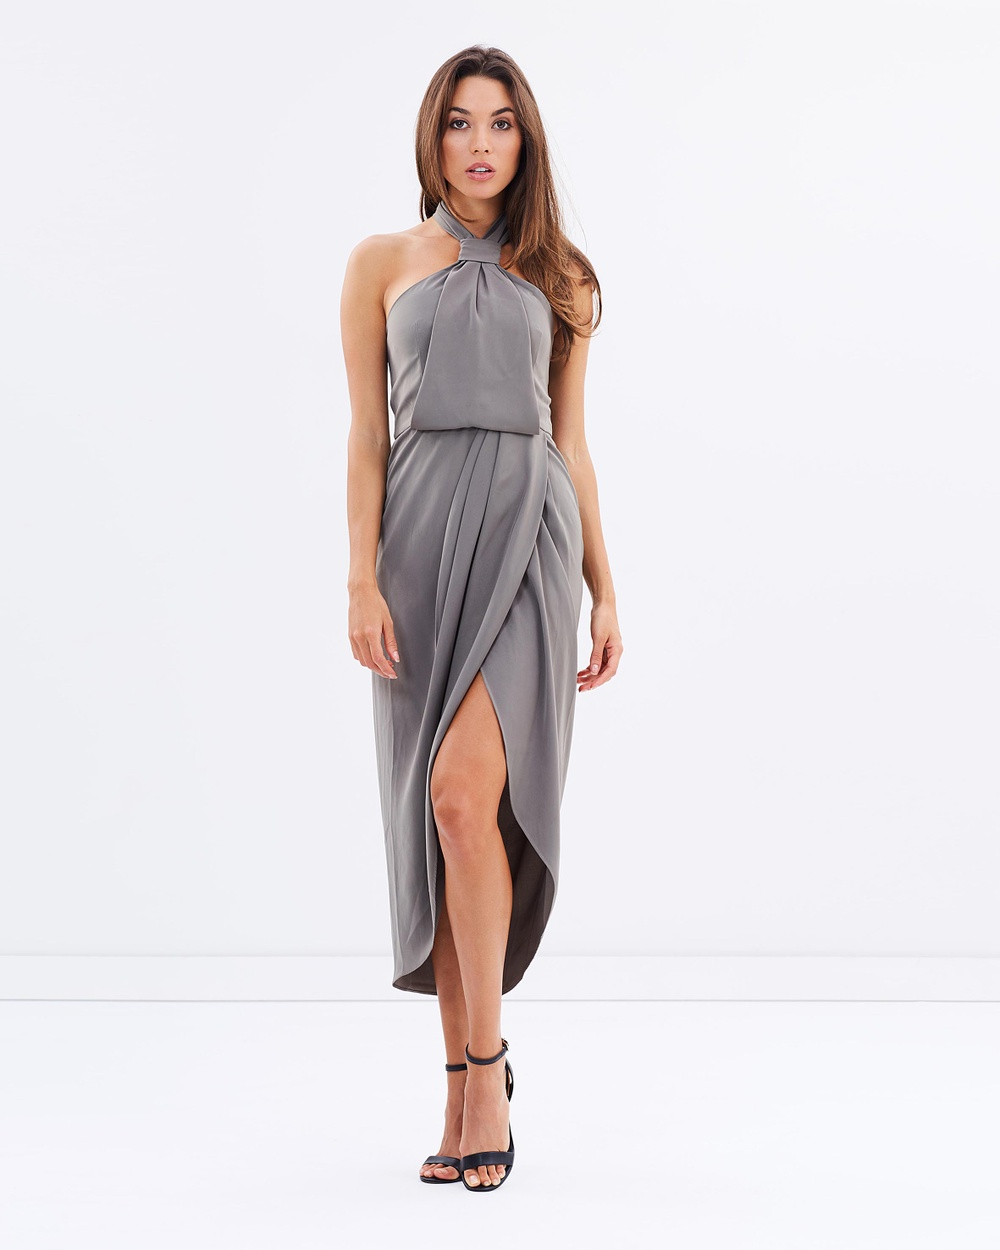 Shona Joy Core Knot Draped Dress Dresses Olive Core Knot Draped Dress